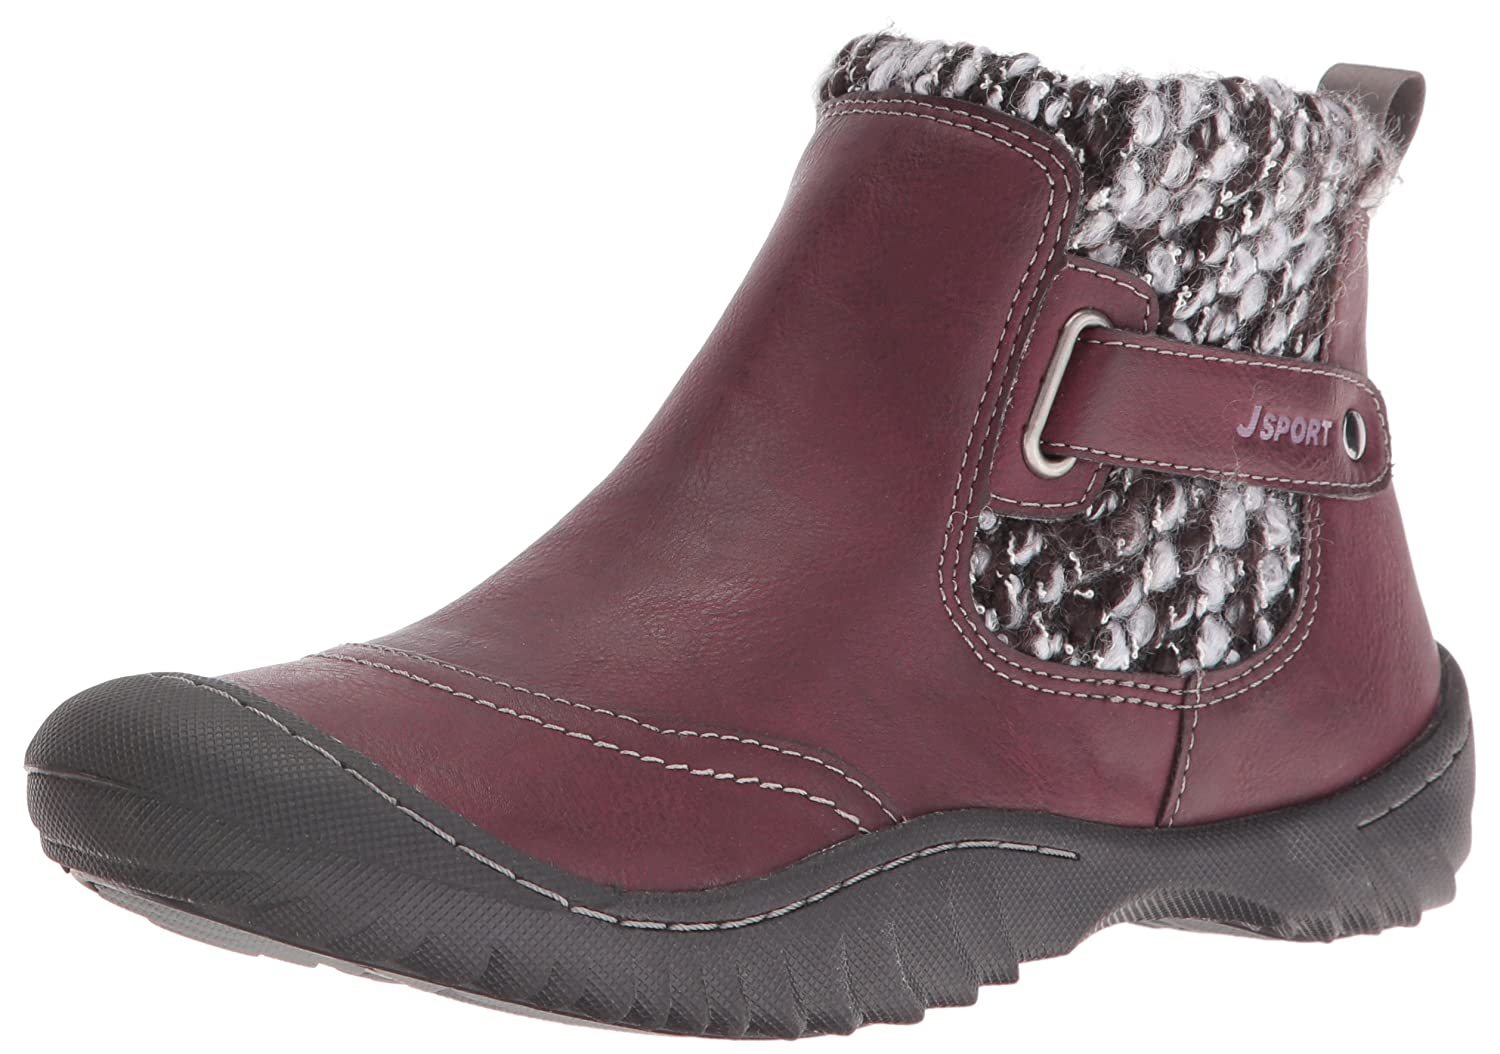 JSport by Jambu Women's Darcie Boot B01GS0O28Q 8 B(M) US|Burgundy